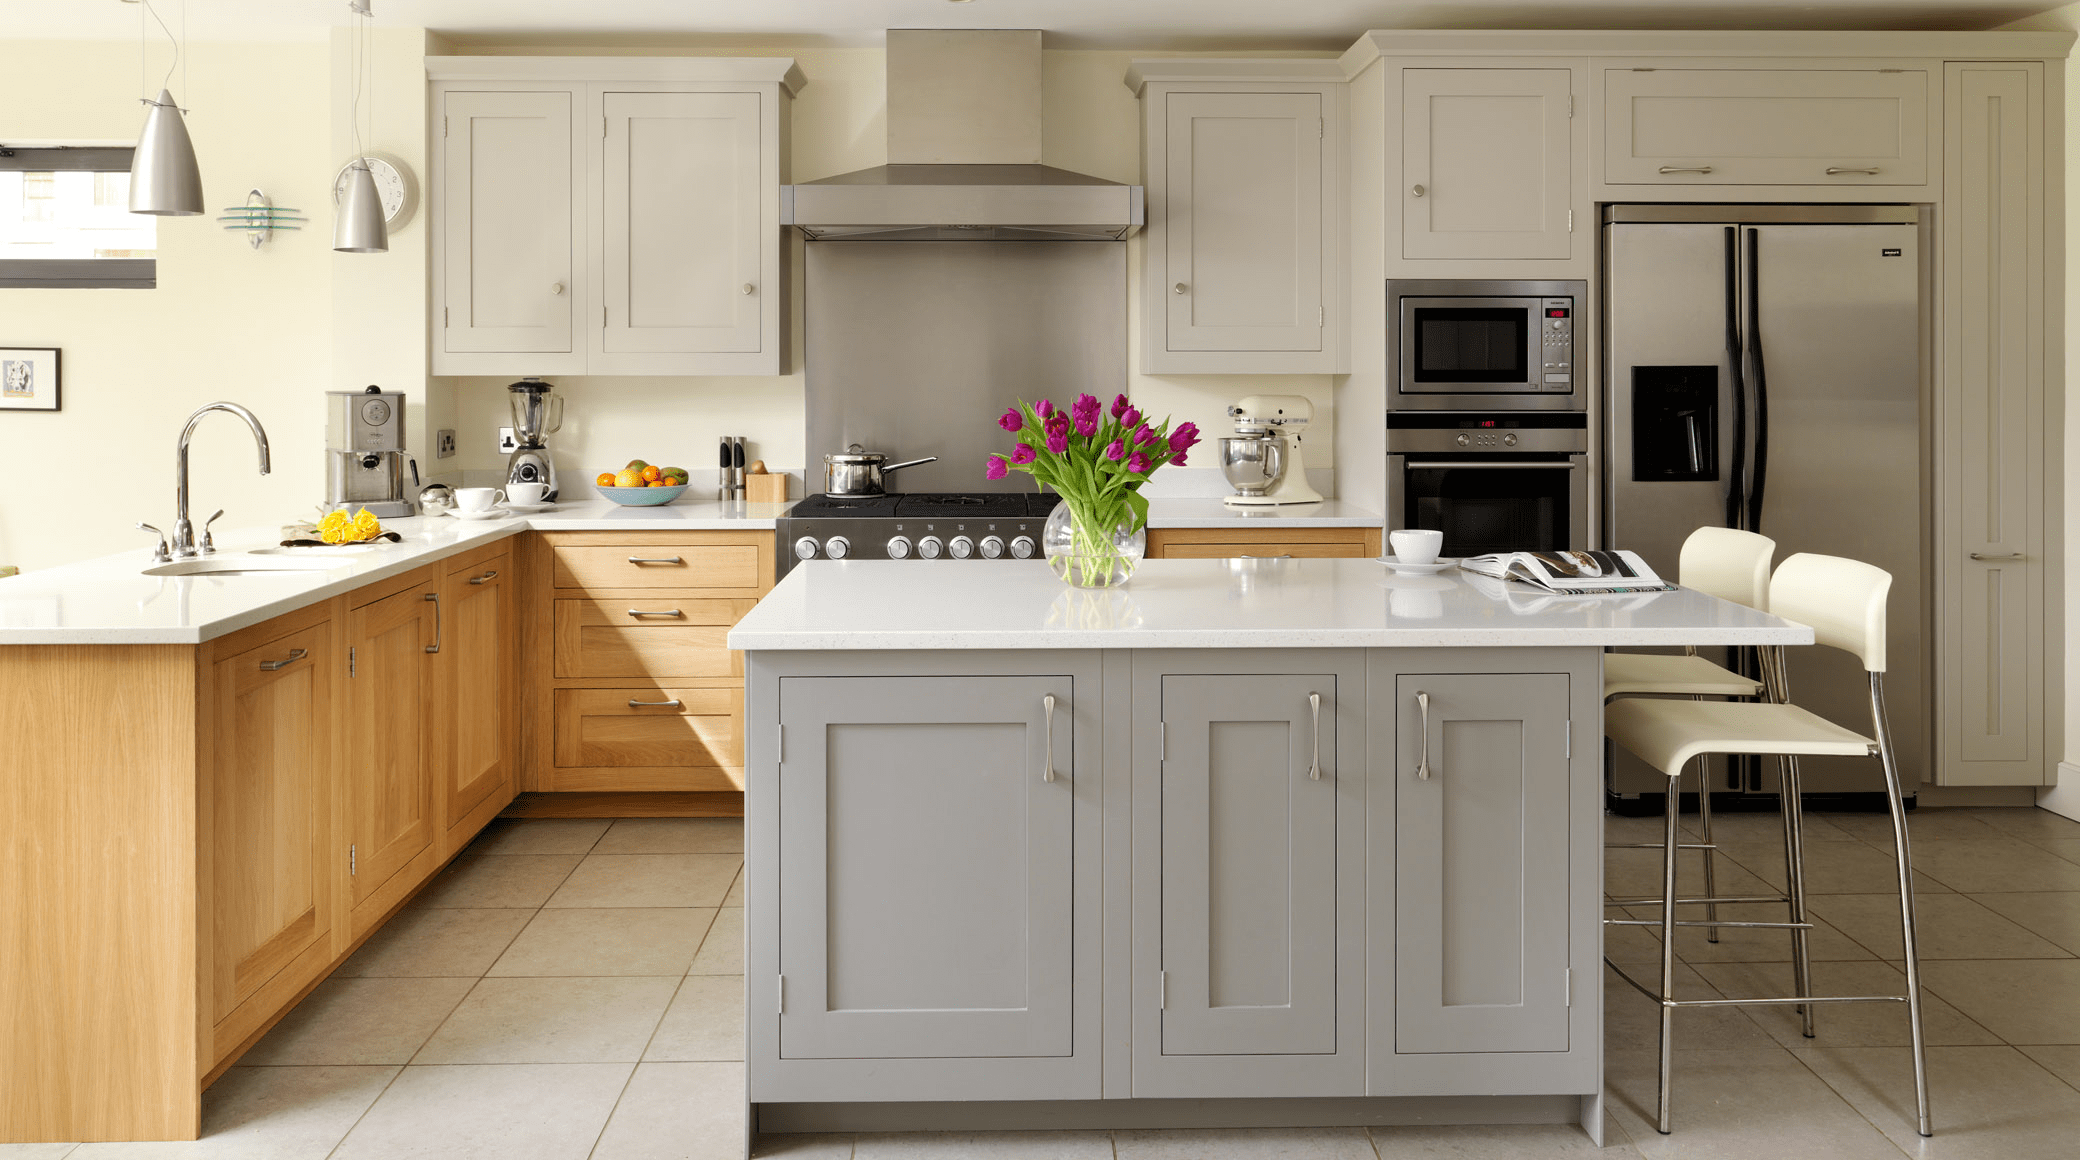 shaker style kitchen cabinets birch cabinets and painted cabinets Kitchen Fascinating White Shaker Style